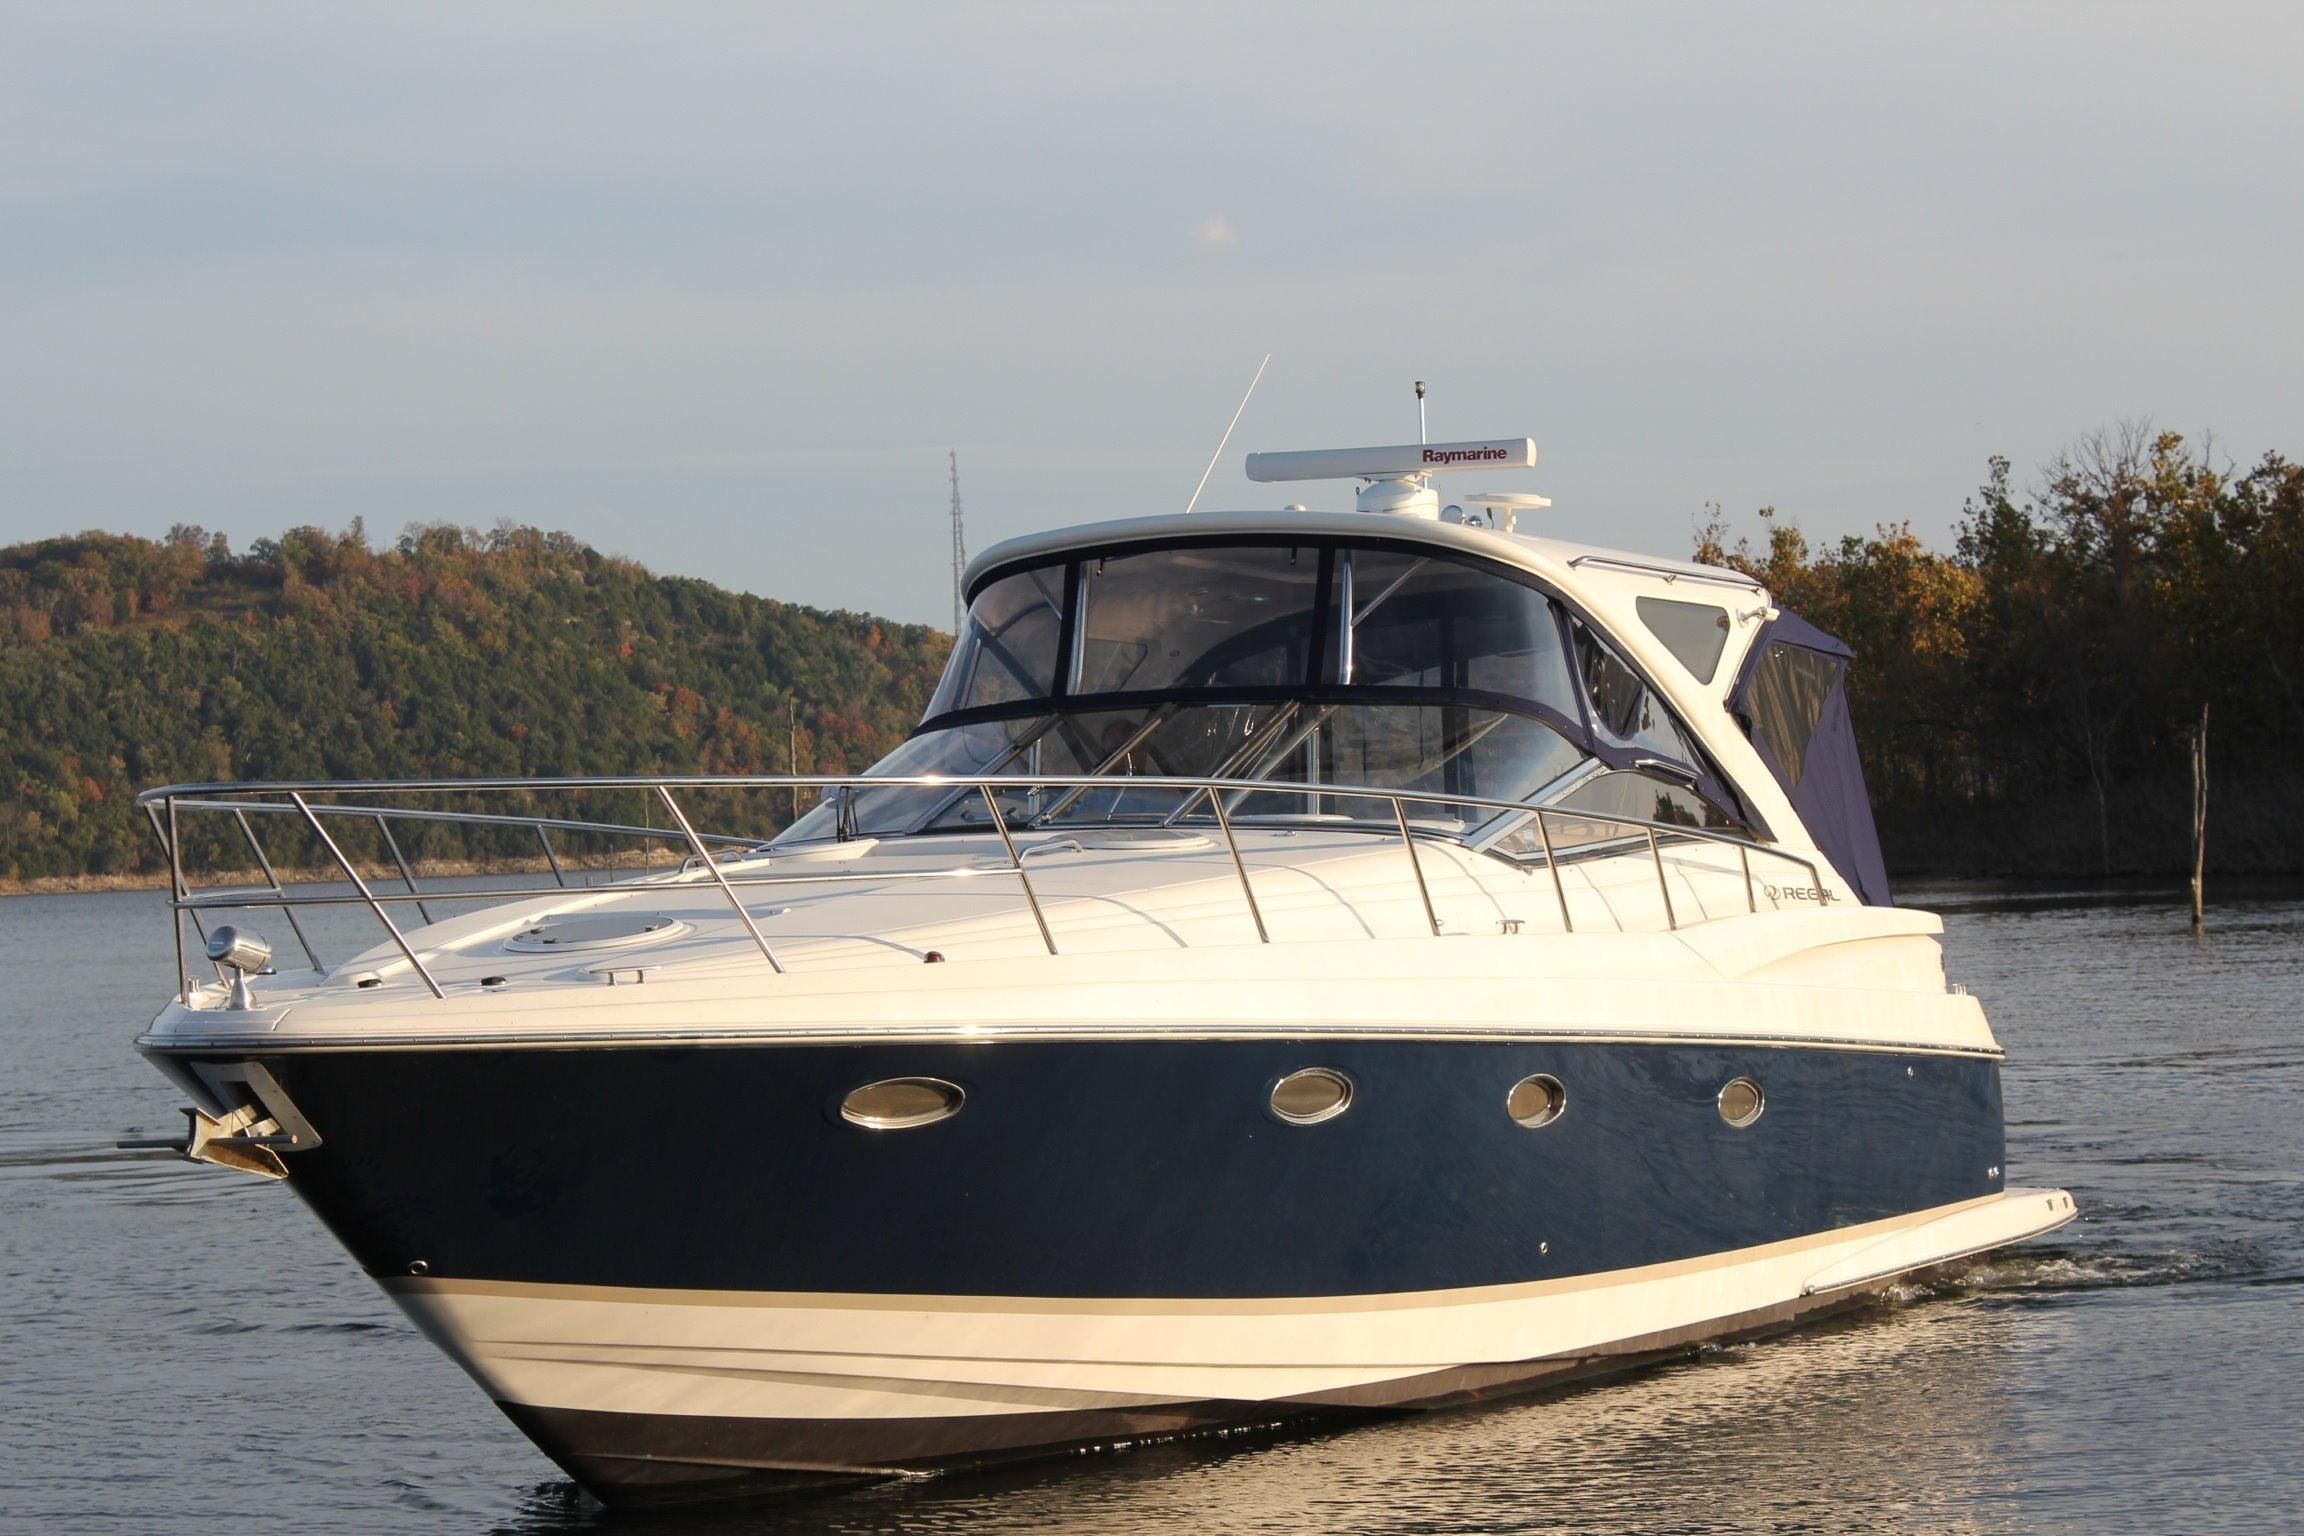 Table Rock (MO) United States  city photos gallery : 2008 Regal 4060 Commodore IPS Power Boat For Sale www.yachtworld.com